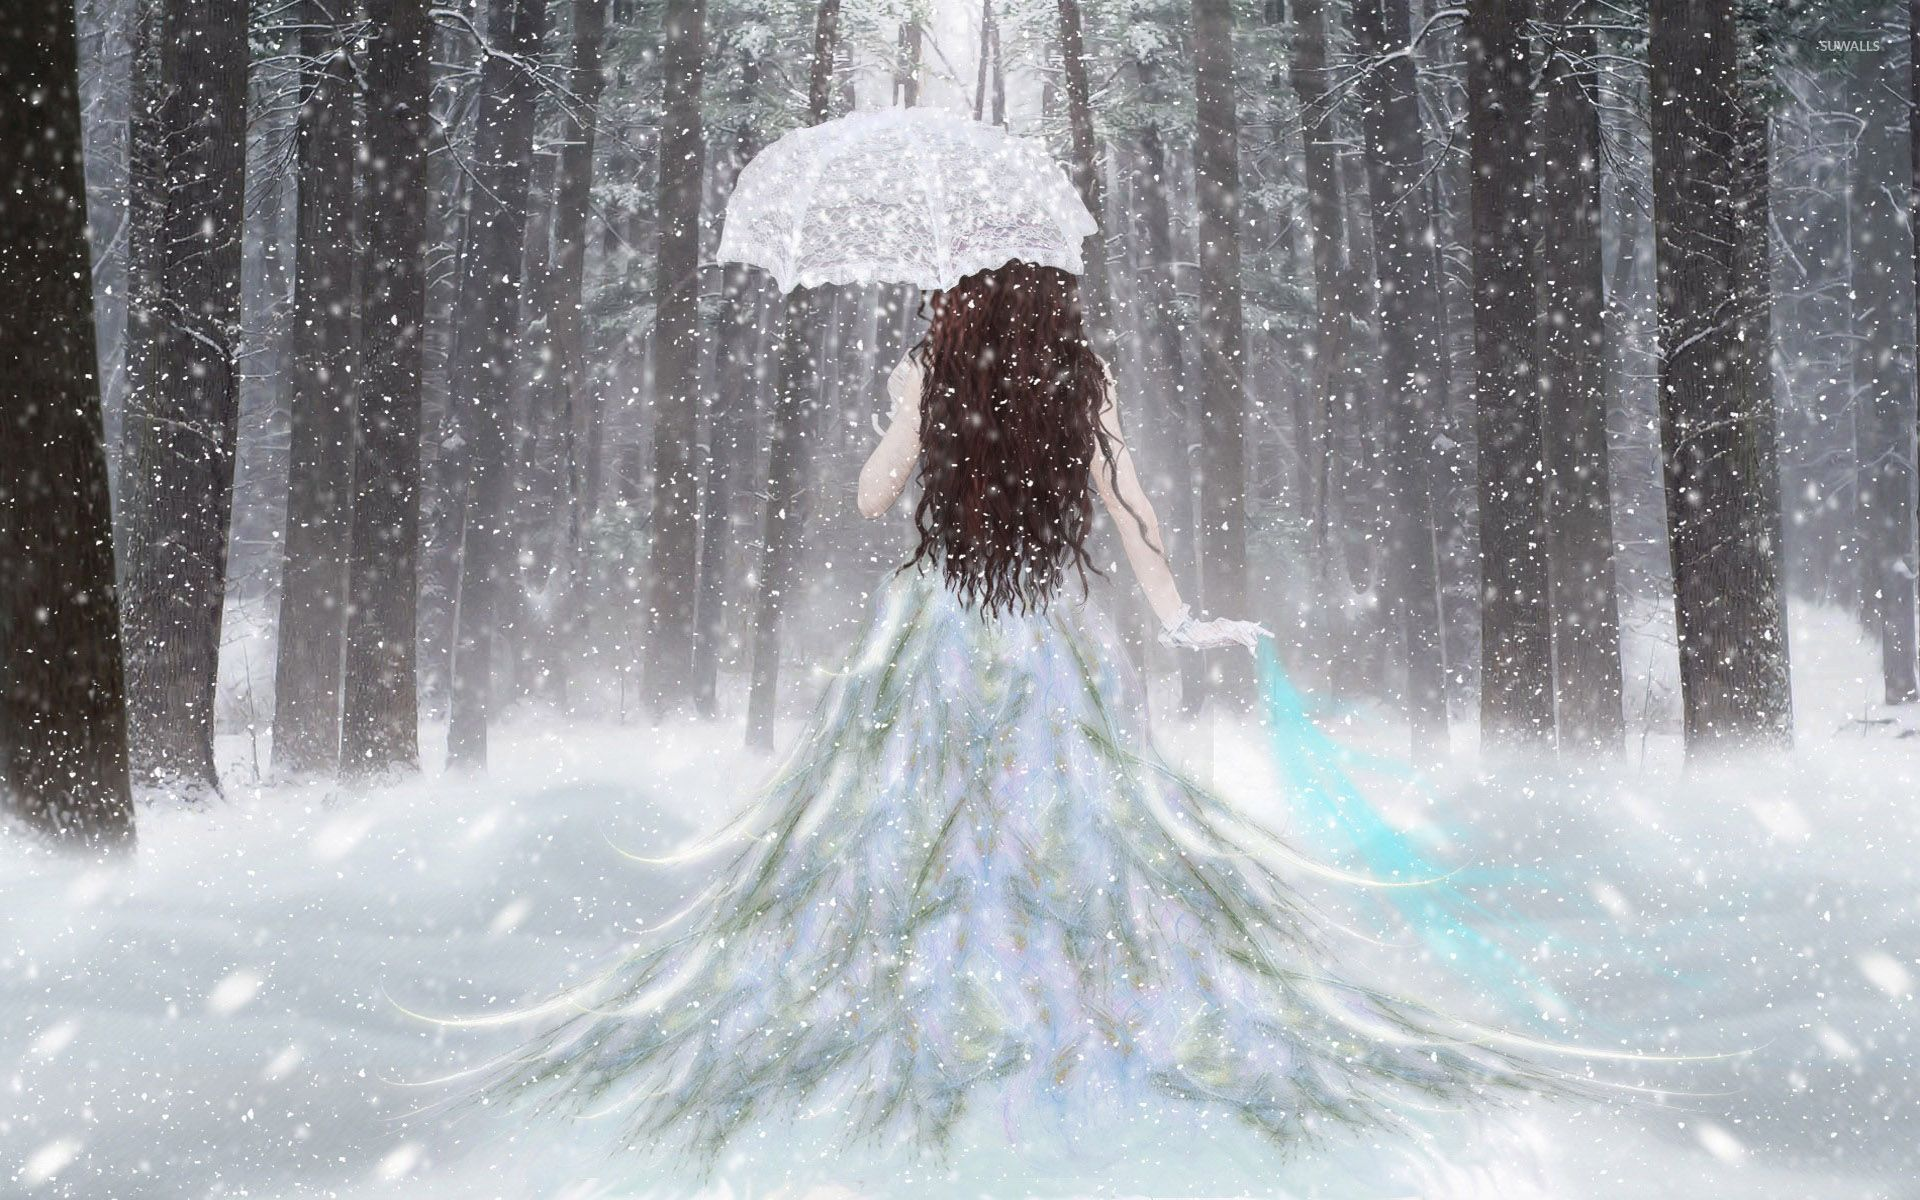 Princess with an umbrella in the snow wallpaper Fantasy